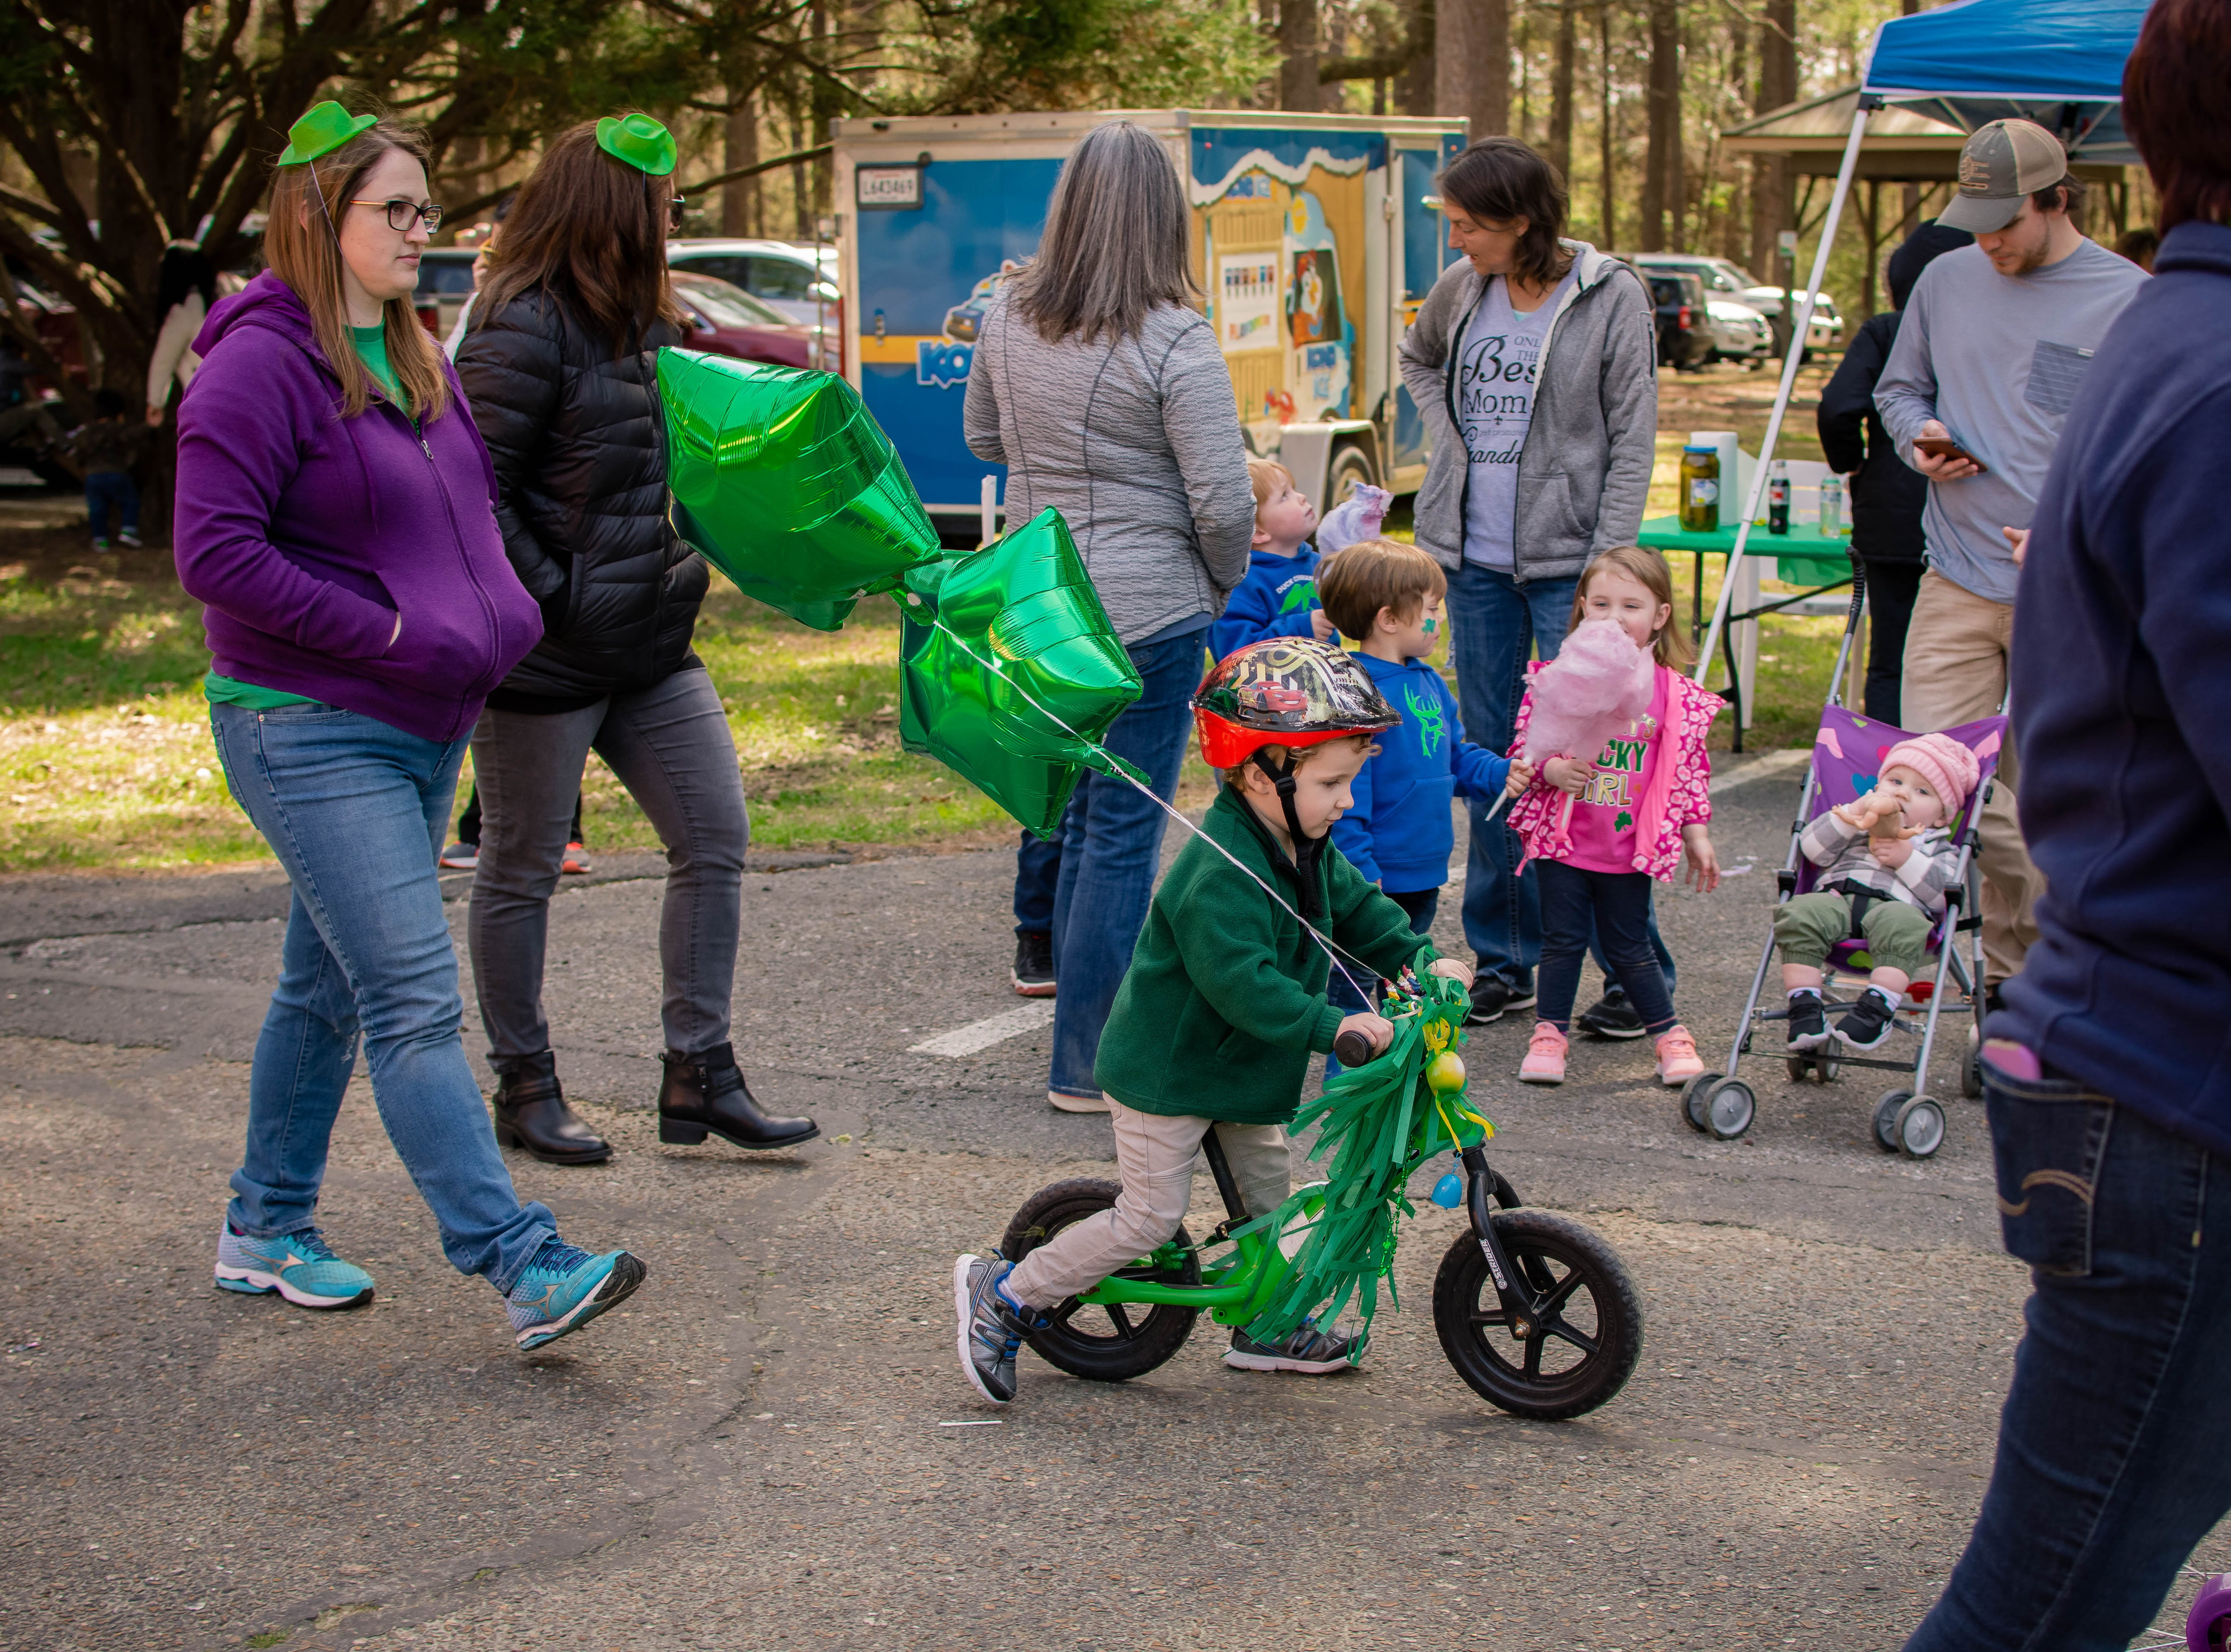 The West Monroe-West Ouachita Chamber of Commerce held their annual St. Patrick's bicycle parade and festival in Kiroli Park in West Monroe, La. on March 16.